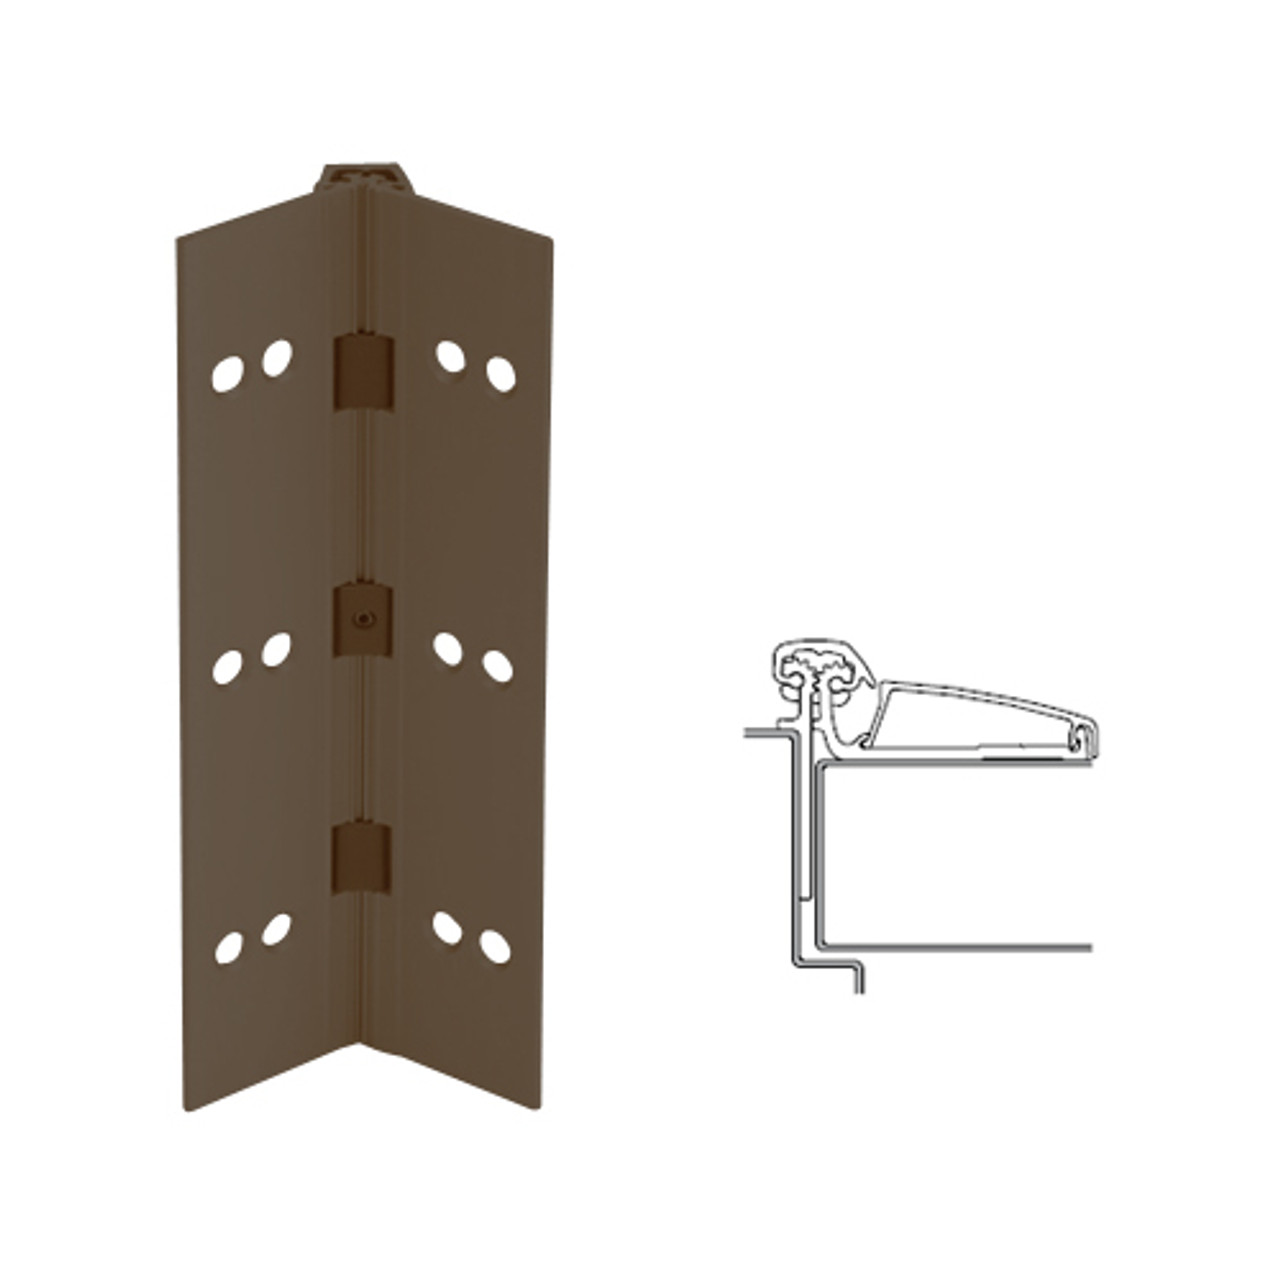 045XY-313AN-120-TF IVES Adjustable Half Surface Continuous Geared Hinges with Thread Forming Screws in Dark Bronze Anodized